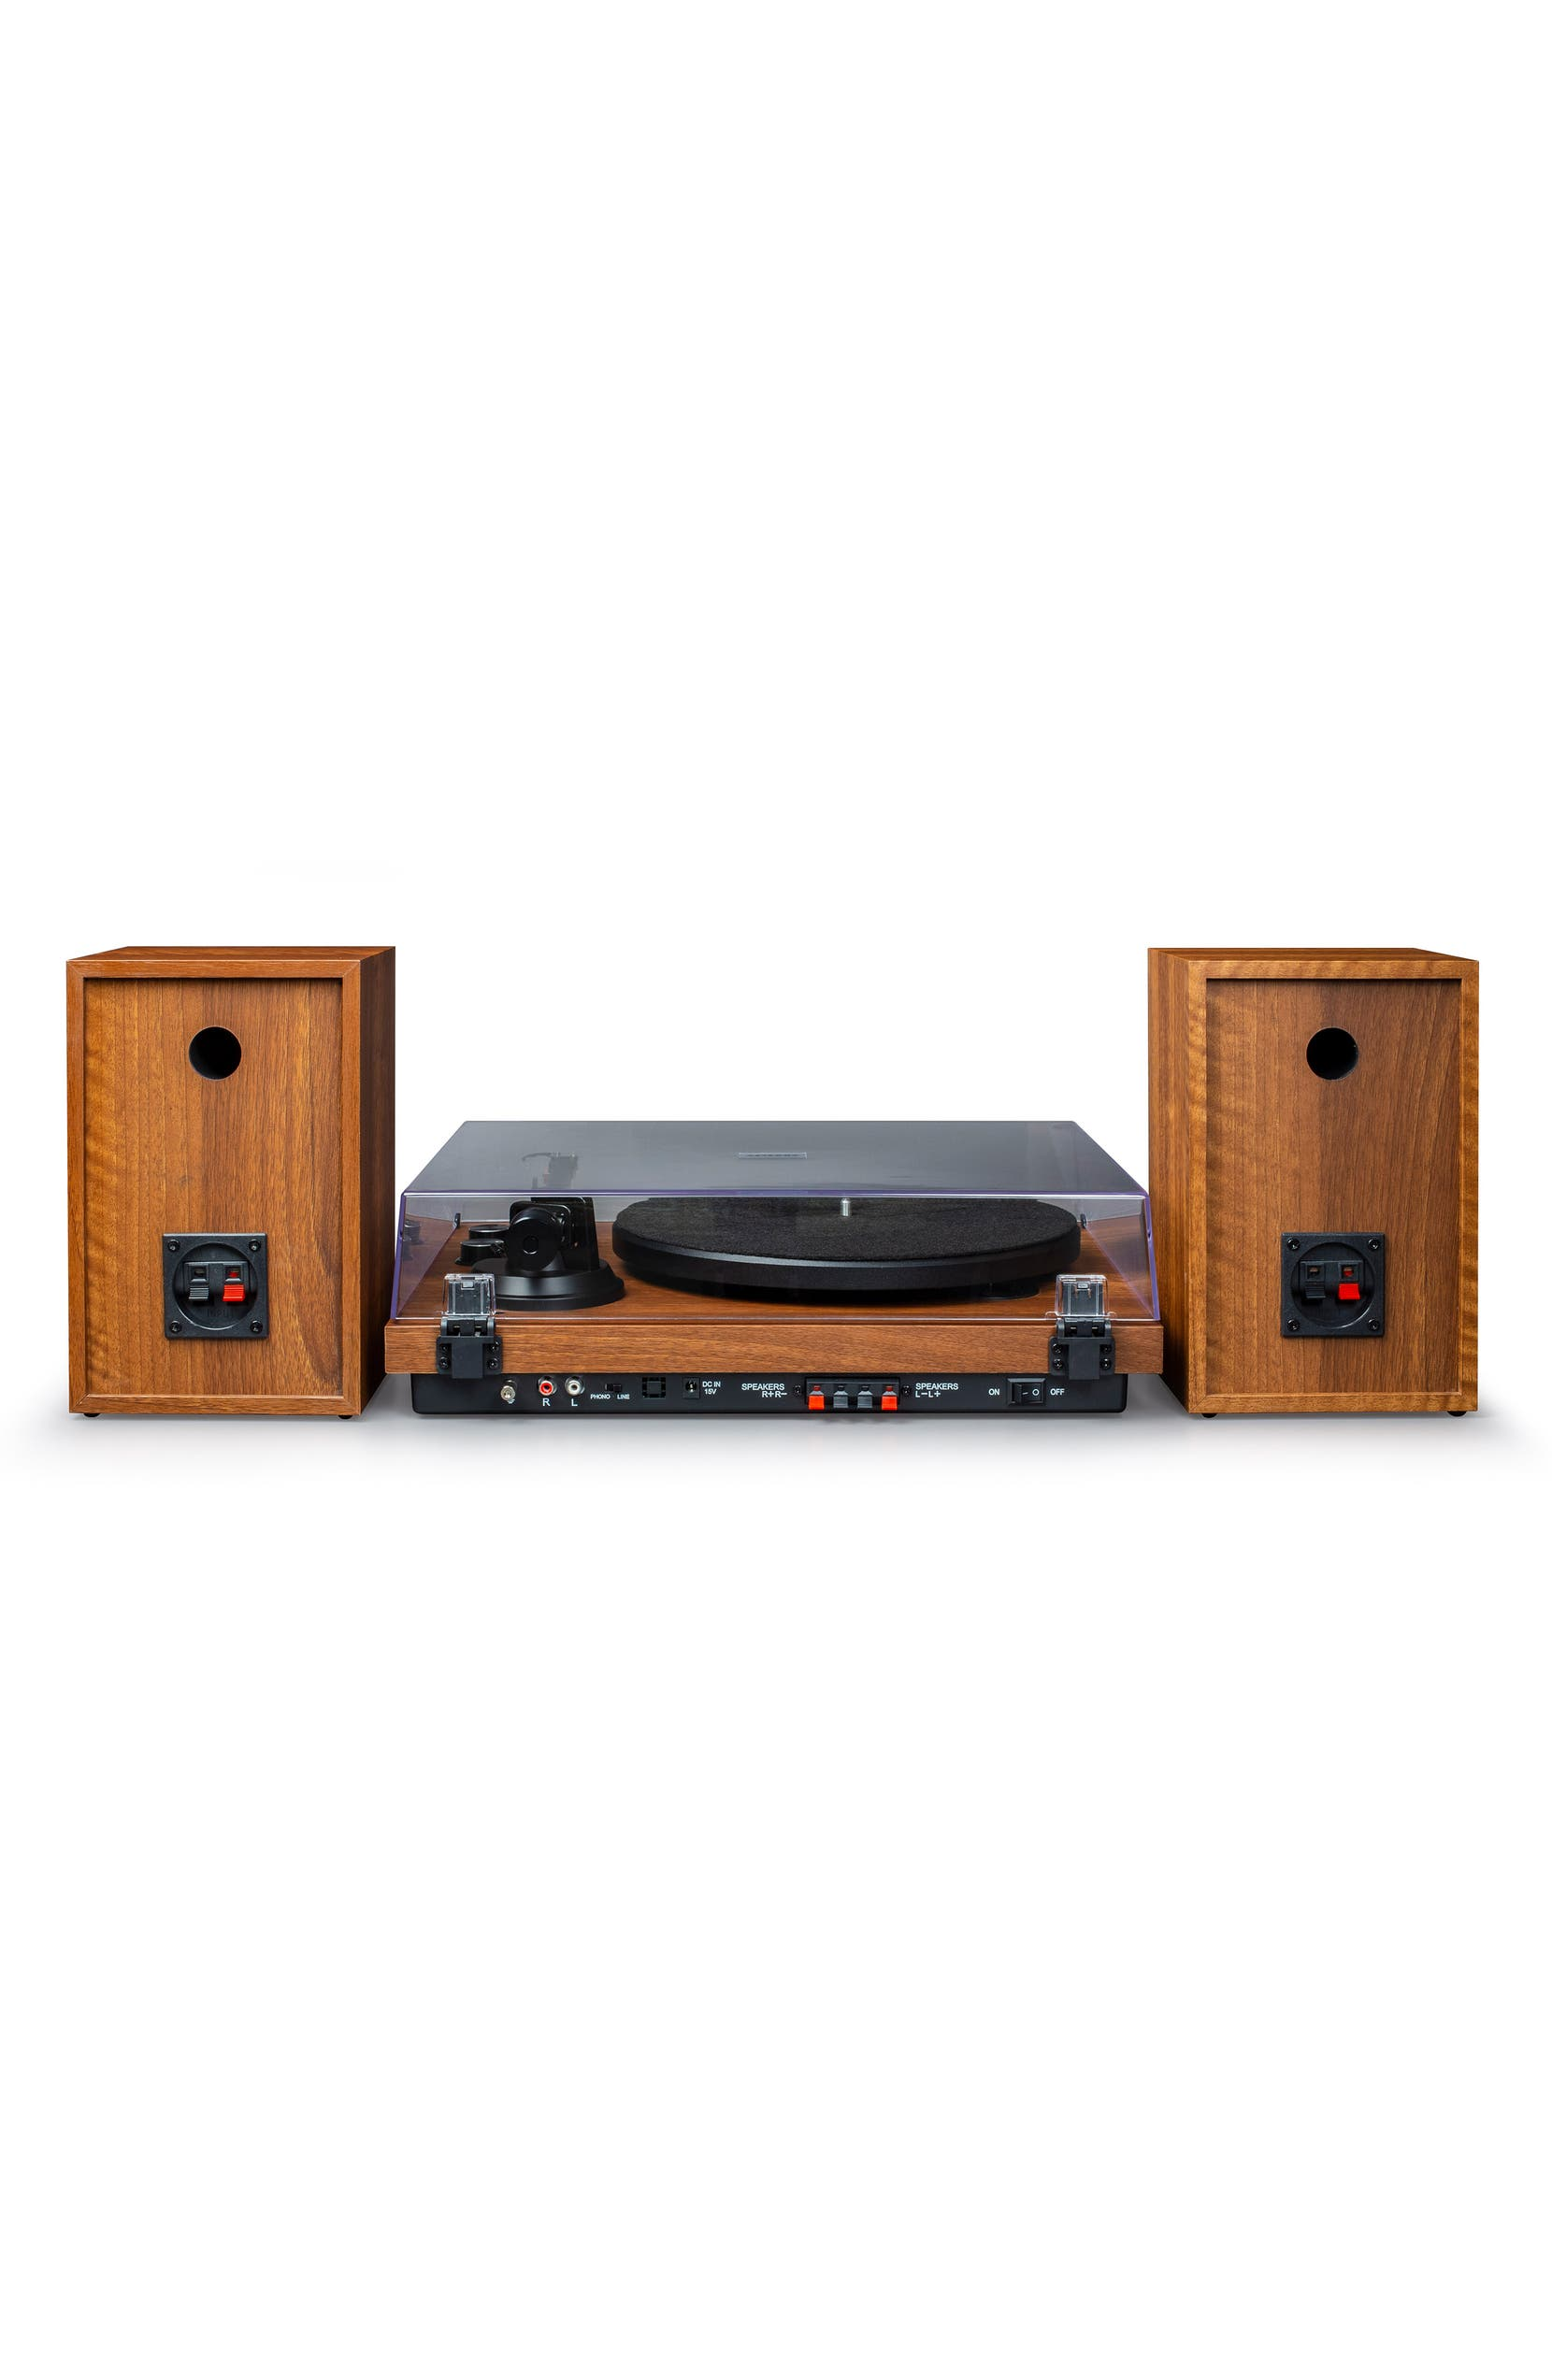 Crosley Radio C62 Turntable Speaker Shelf System Nordstrom